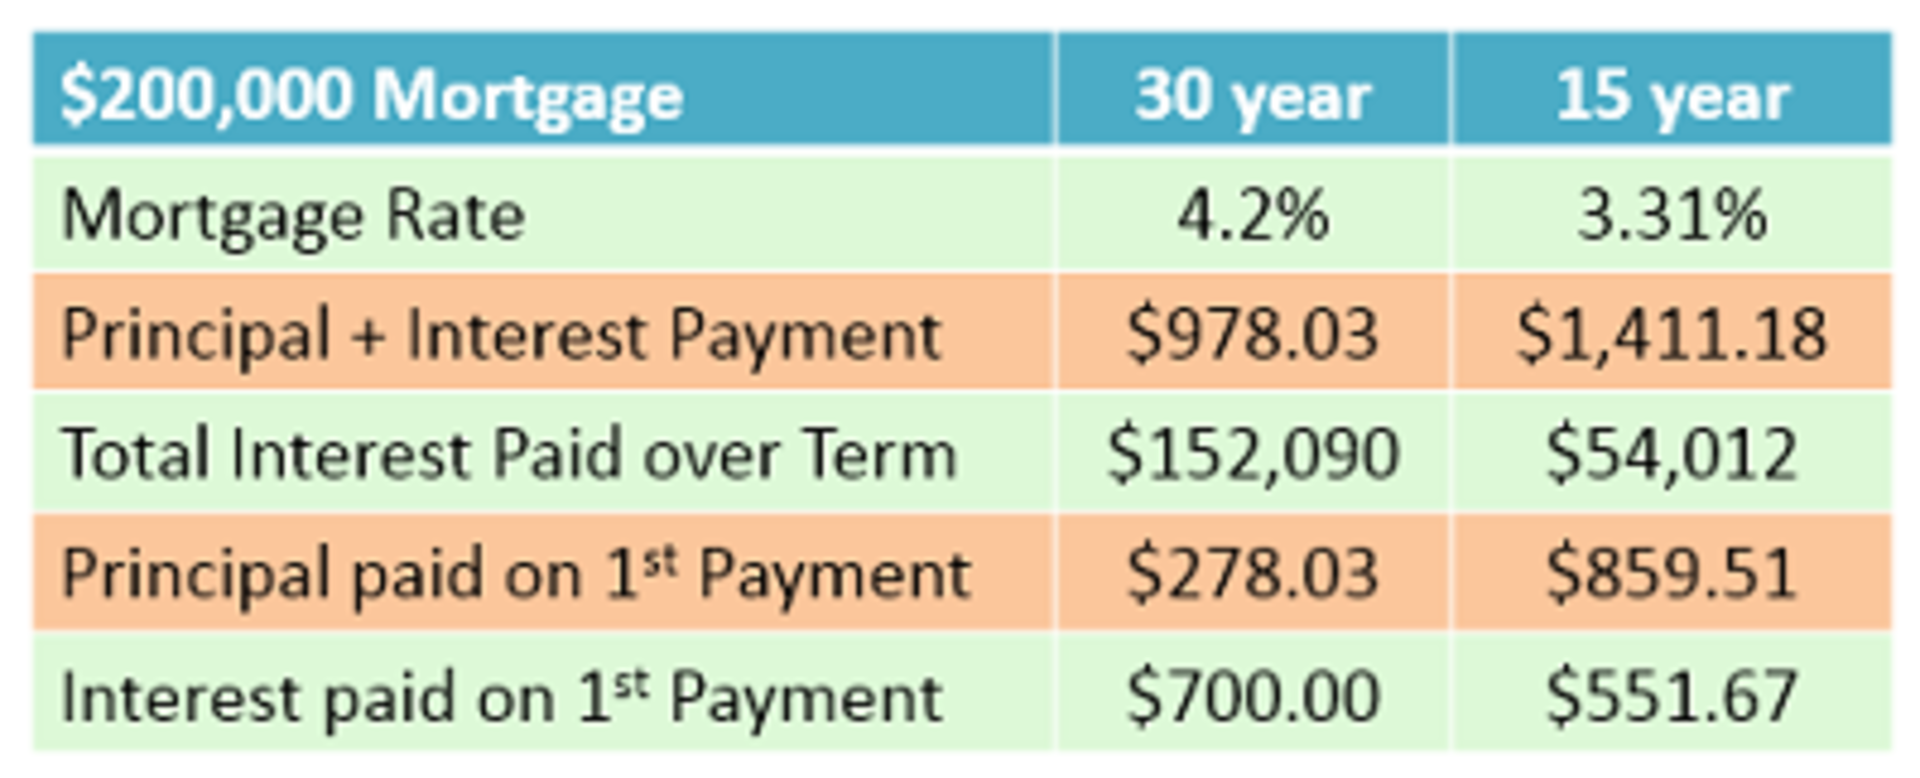 15 year vs. 30 year Mortgage